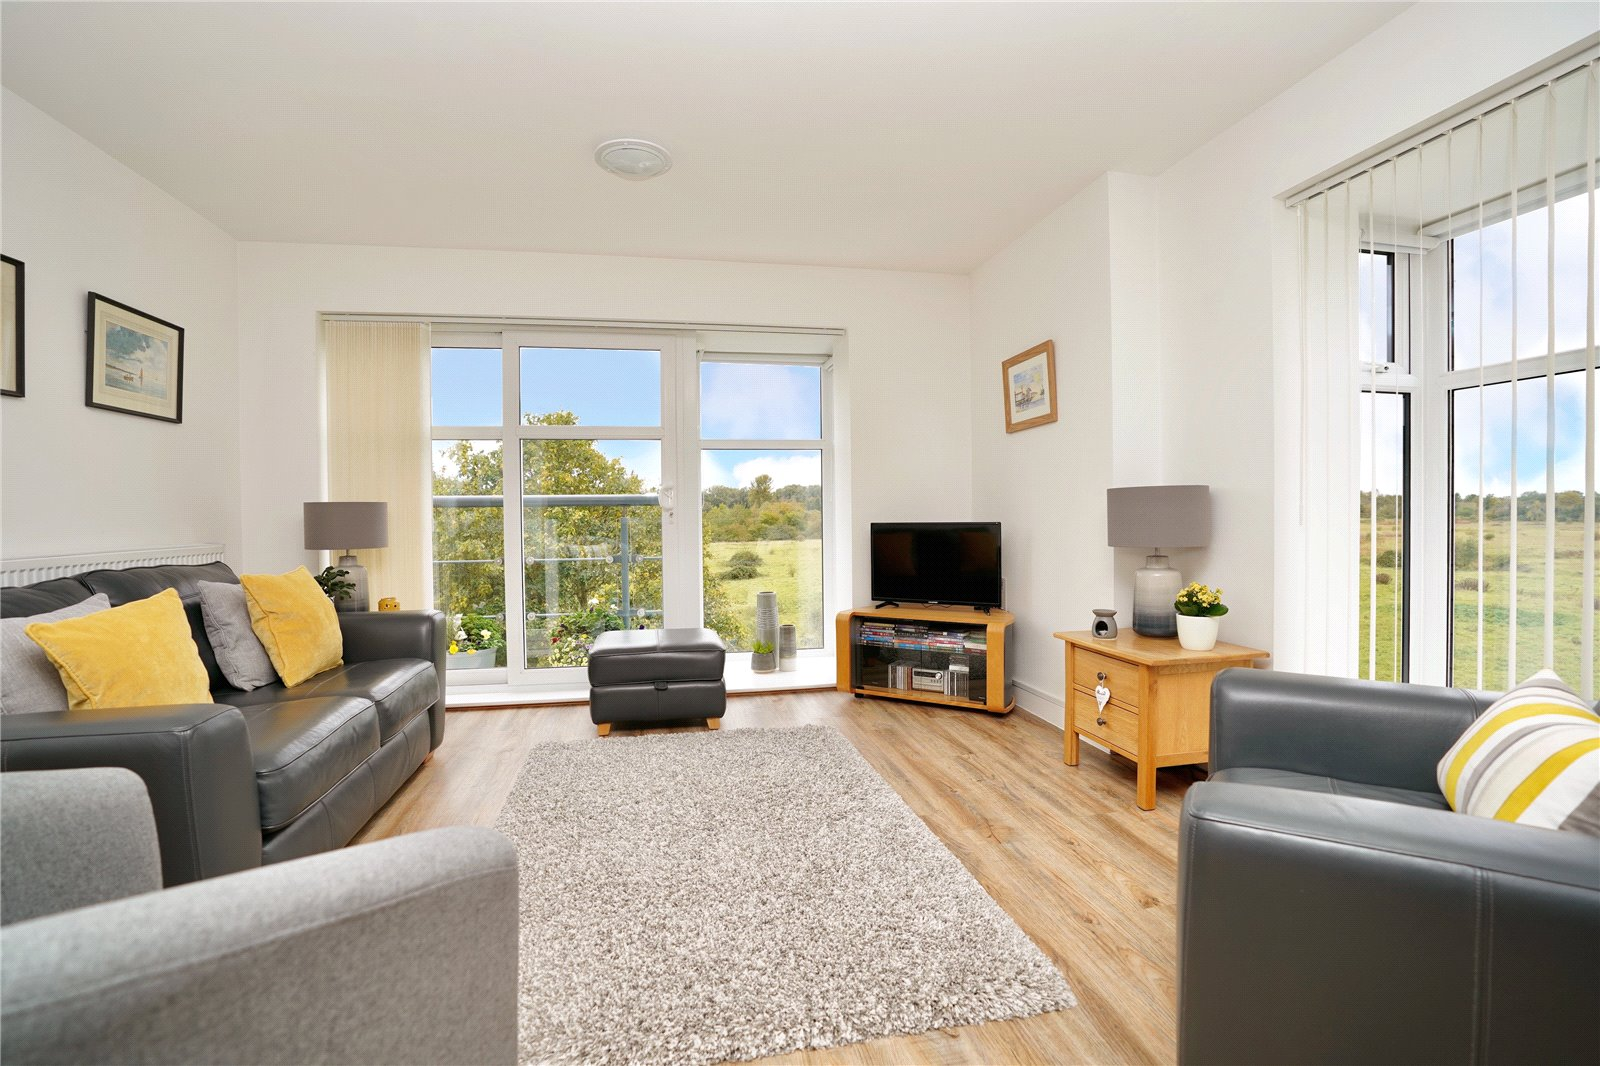 2 bed apartment for sale in Little Paxton, Red Admiral Court, PE19 6BU 0